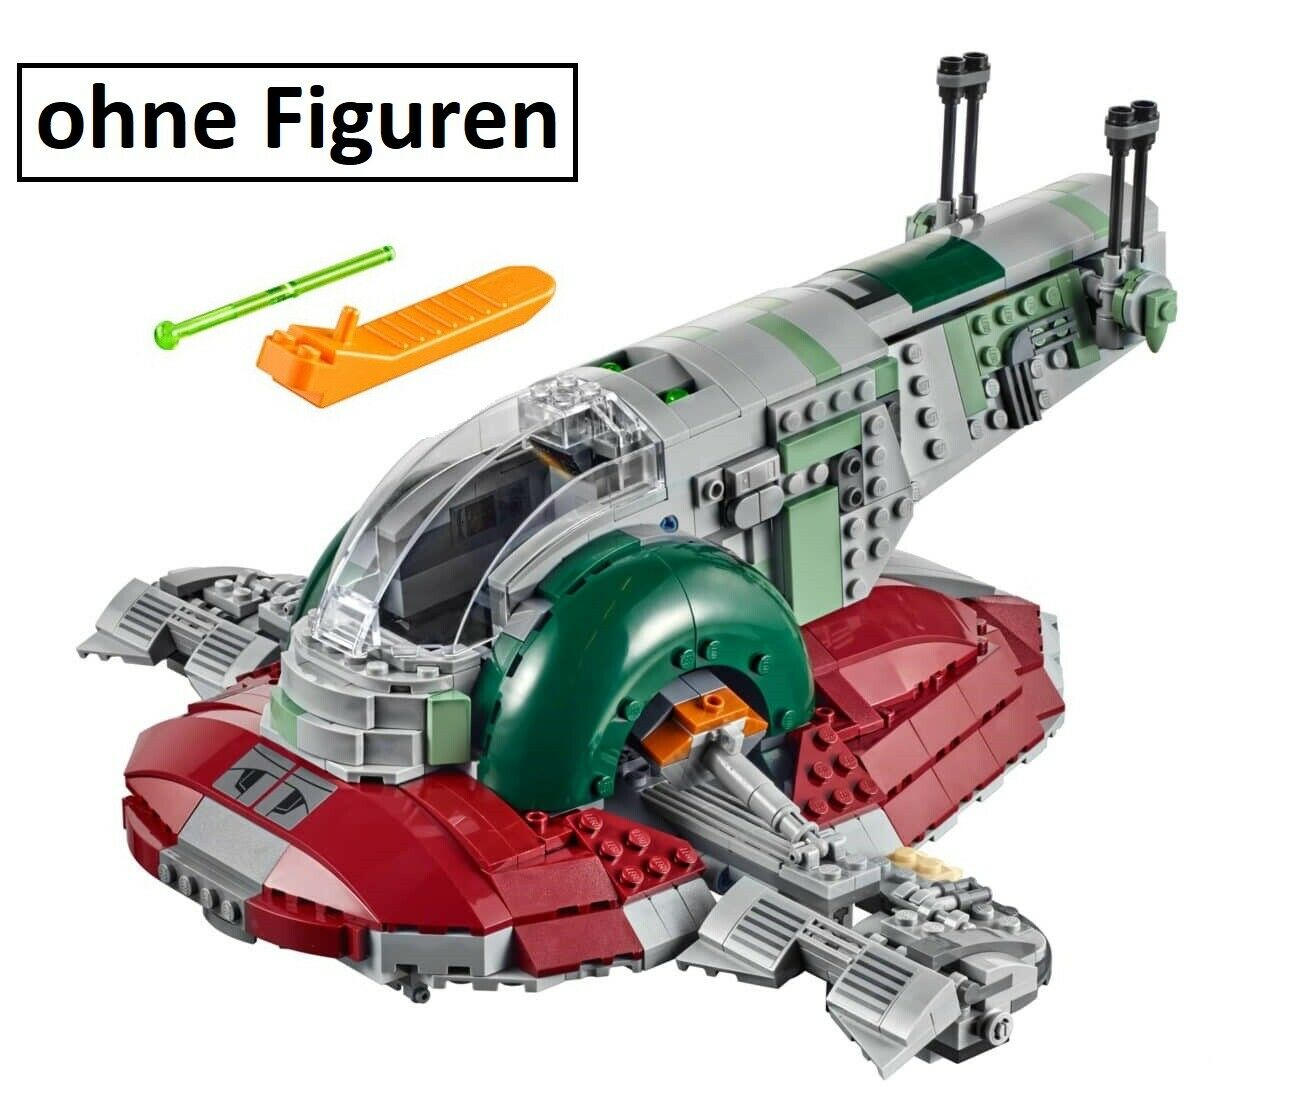 LEGO® Star Wars™ aus 75243 Slave 1™ 20th Anniversary brandneu ohne Figuren